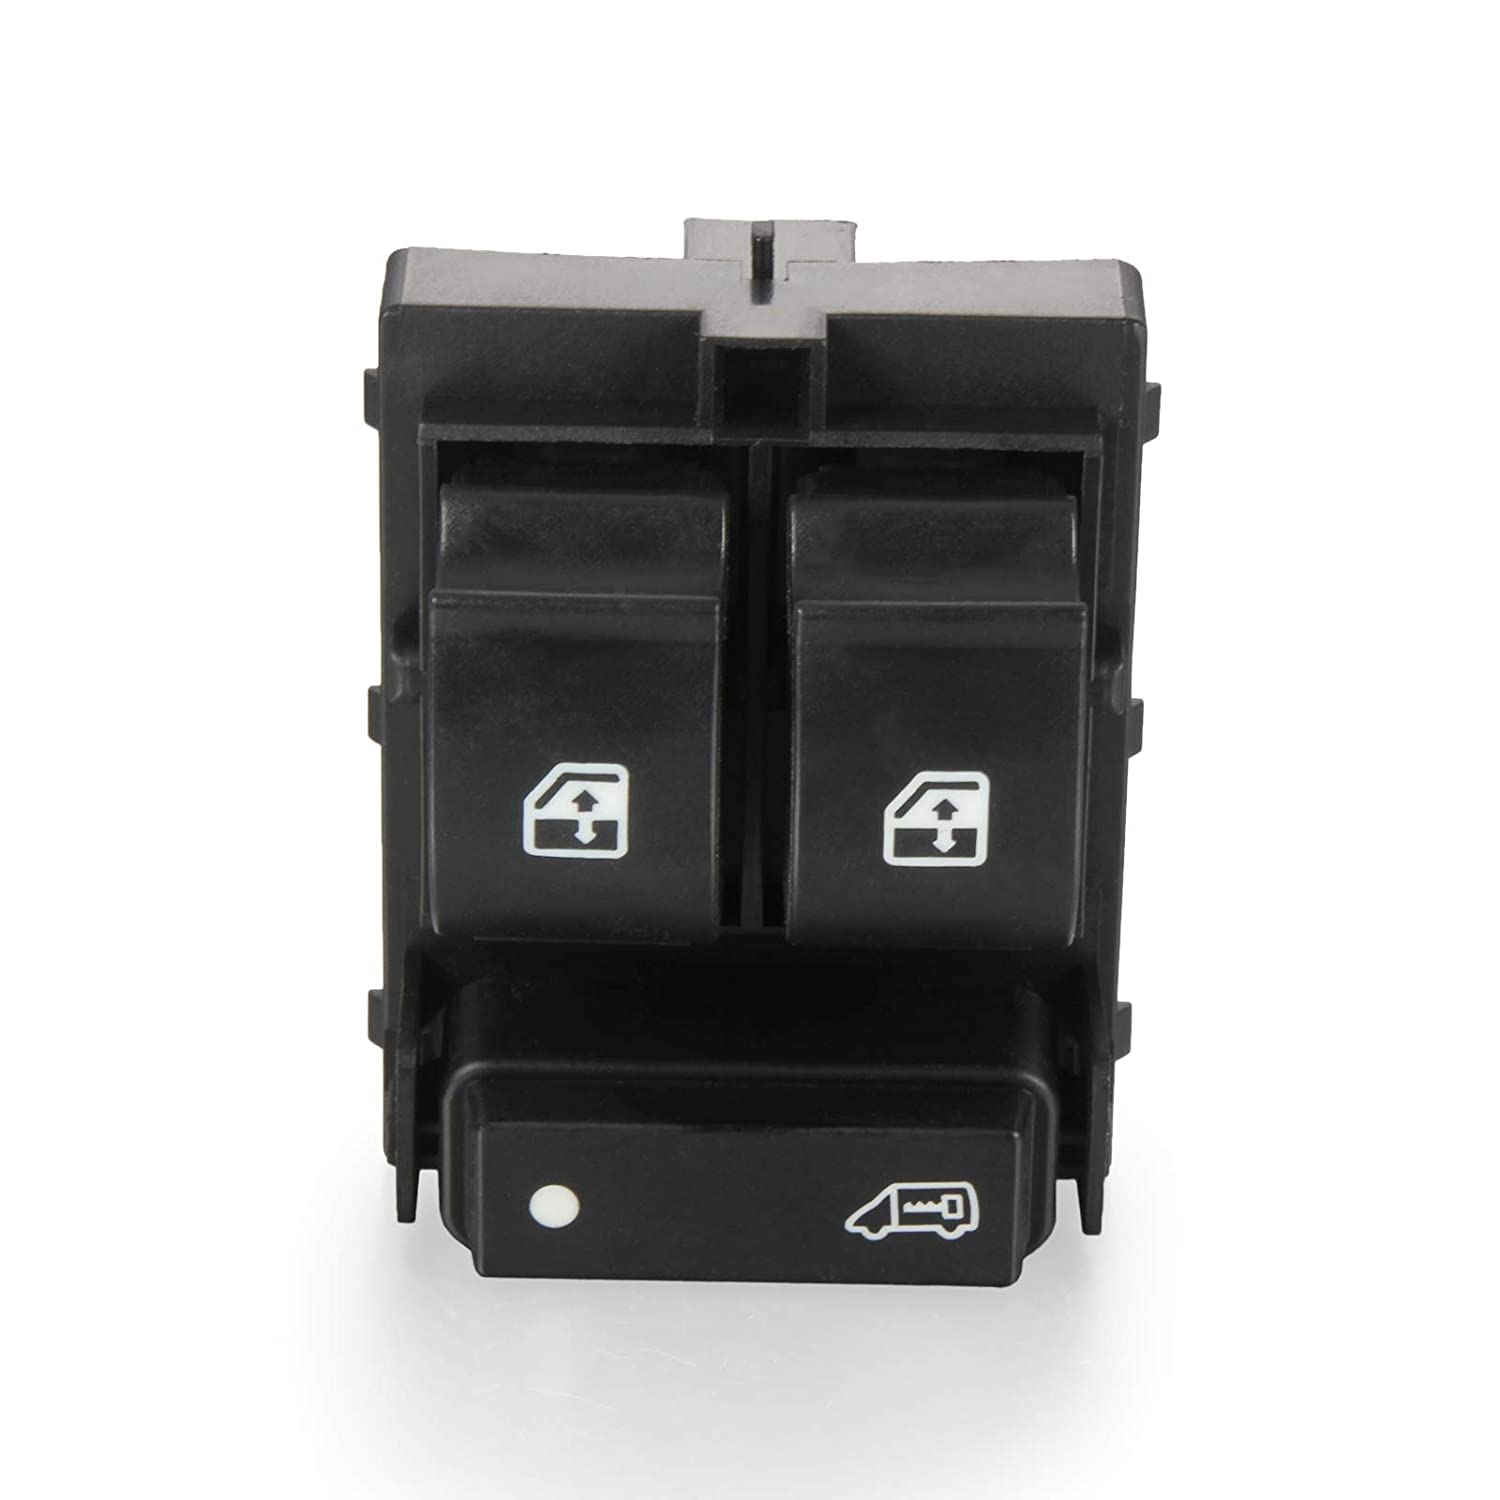 2006-2016 Ducato 250 RICH CAR Electric Window Control Switch 735421419 Driver Side for Relay 2001-2016